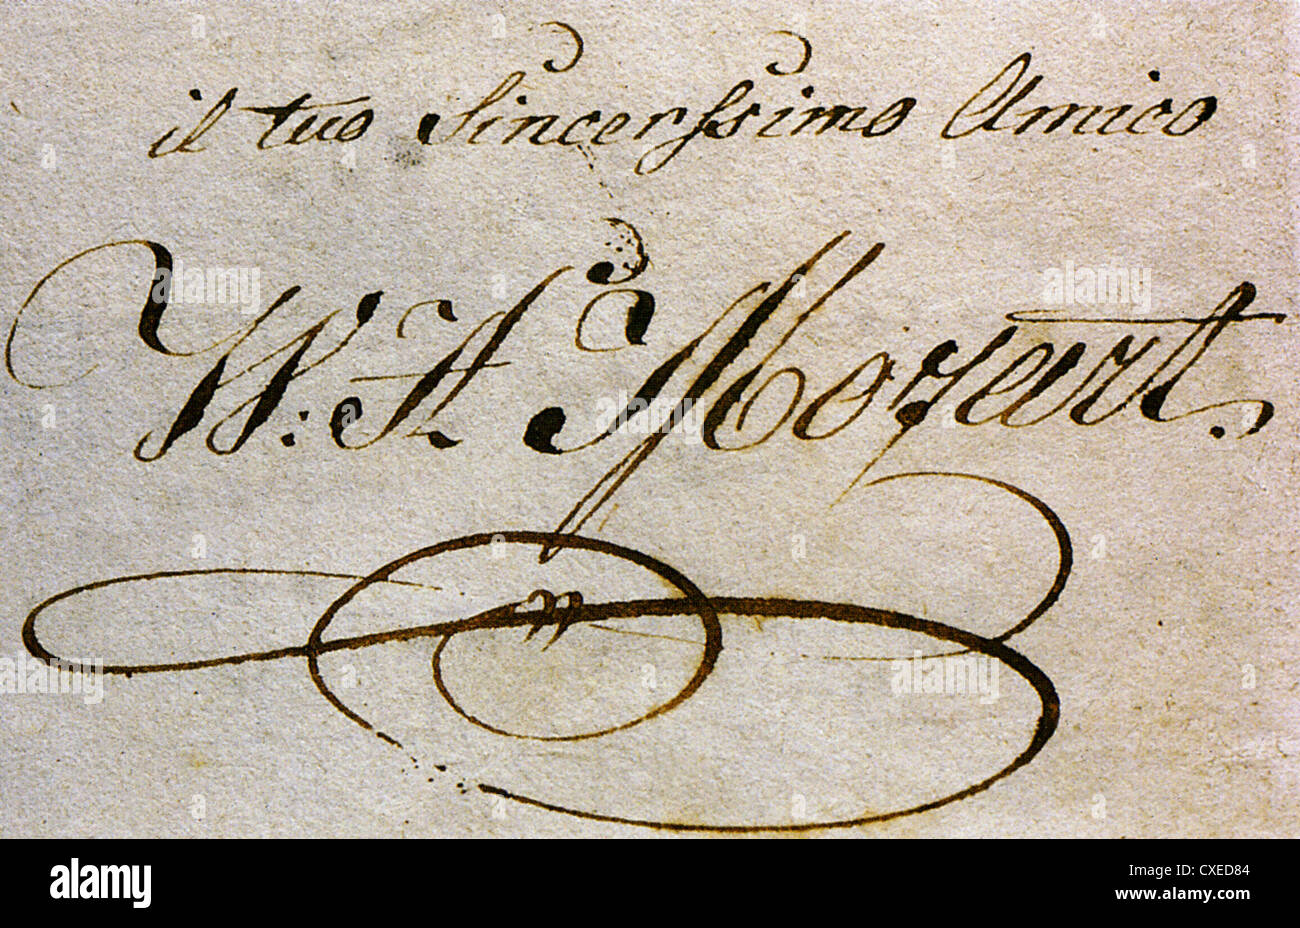 WOLFGANG AMADEUS MOZART (1756-1791) autograph 'from your sincere friend' - Stock Image